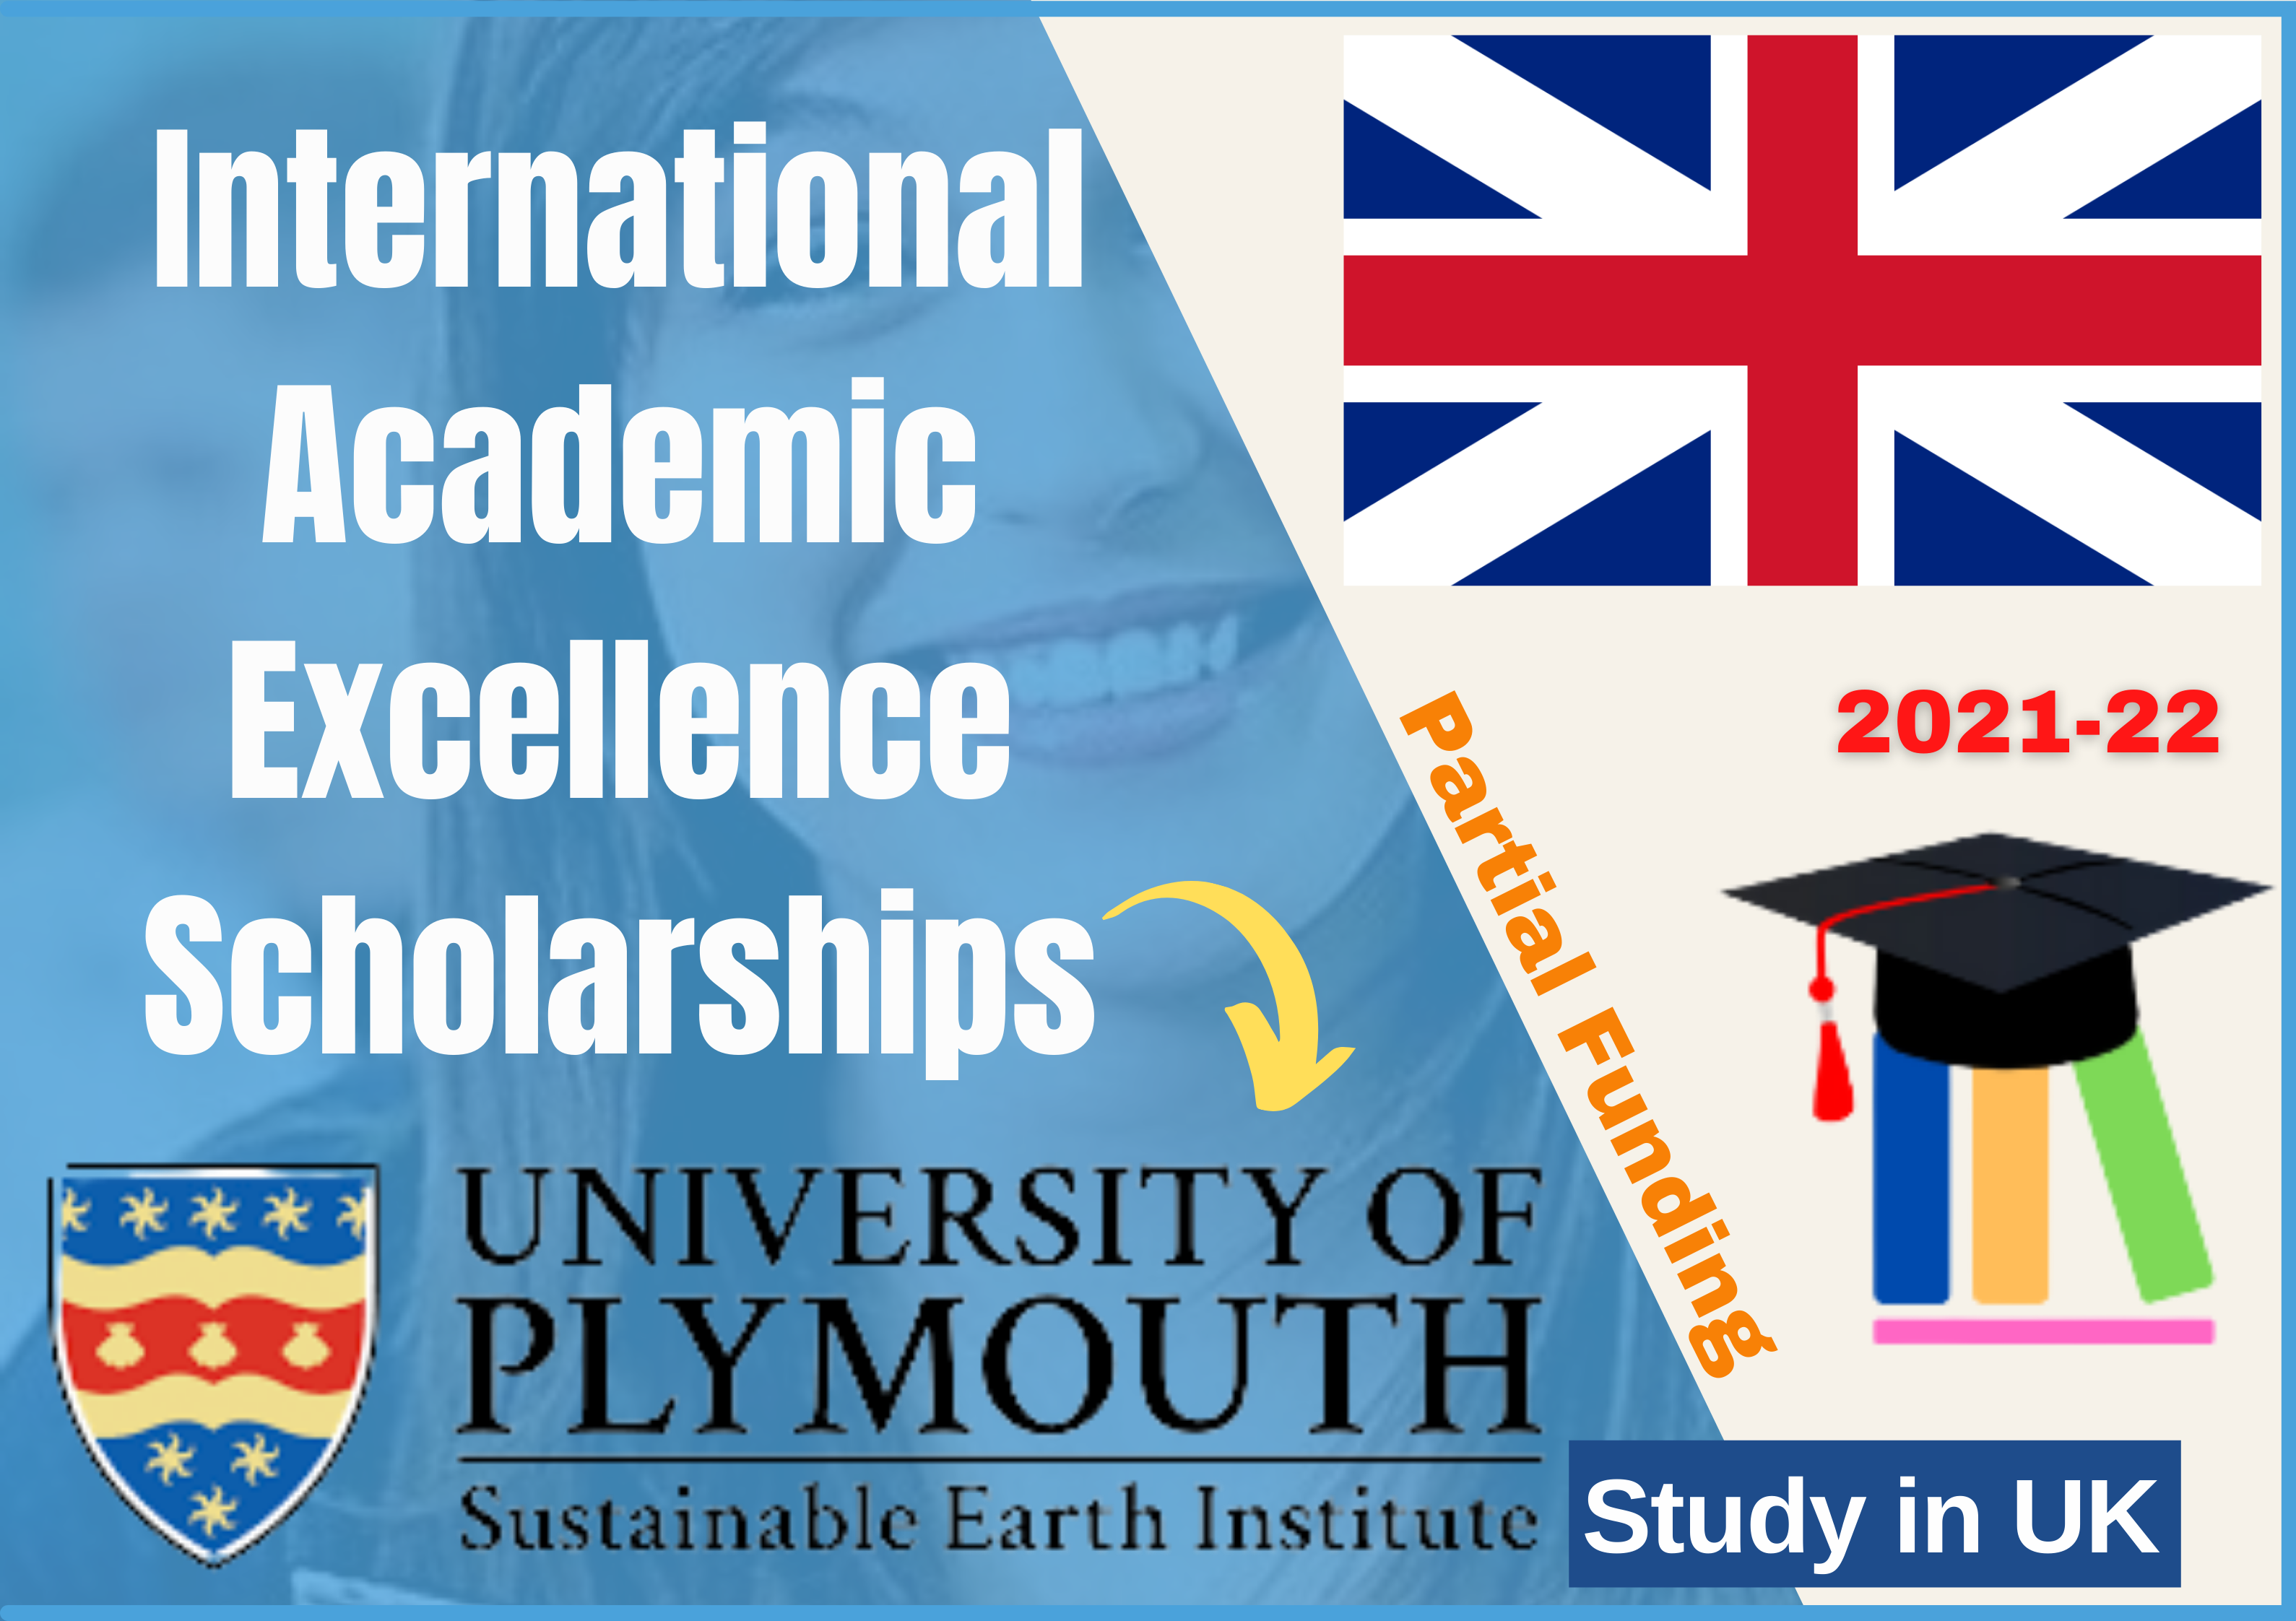 University of Plymouth UK Opens International Academic Excellence Scholarships – 2021-22